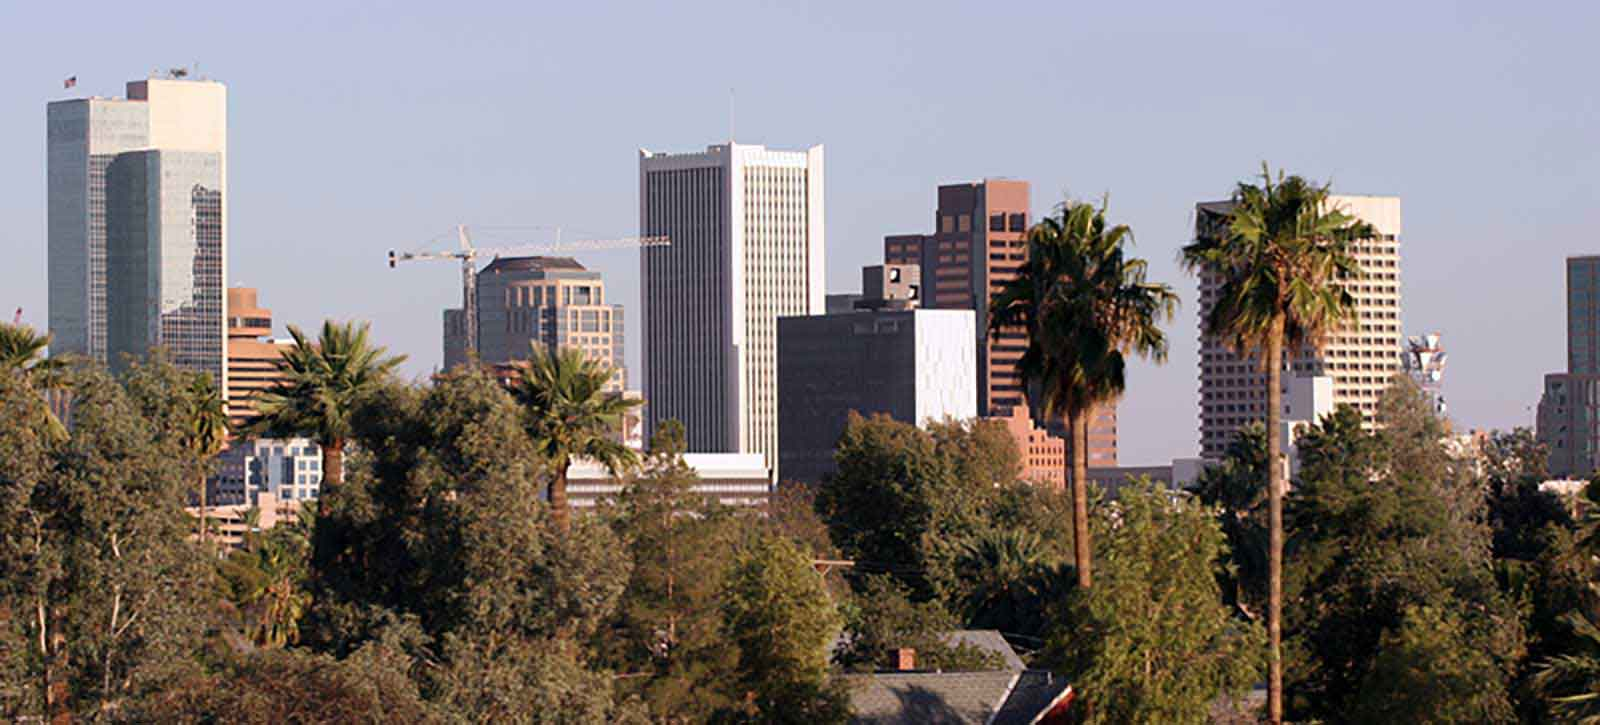 DCT Assemblies is headquartered in Phoenix, Arizona